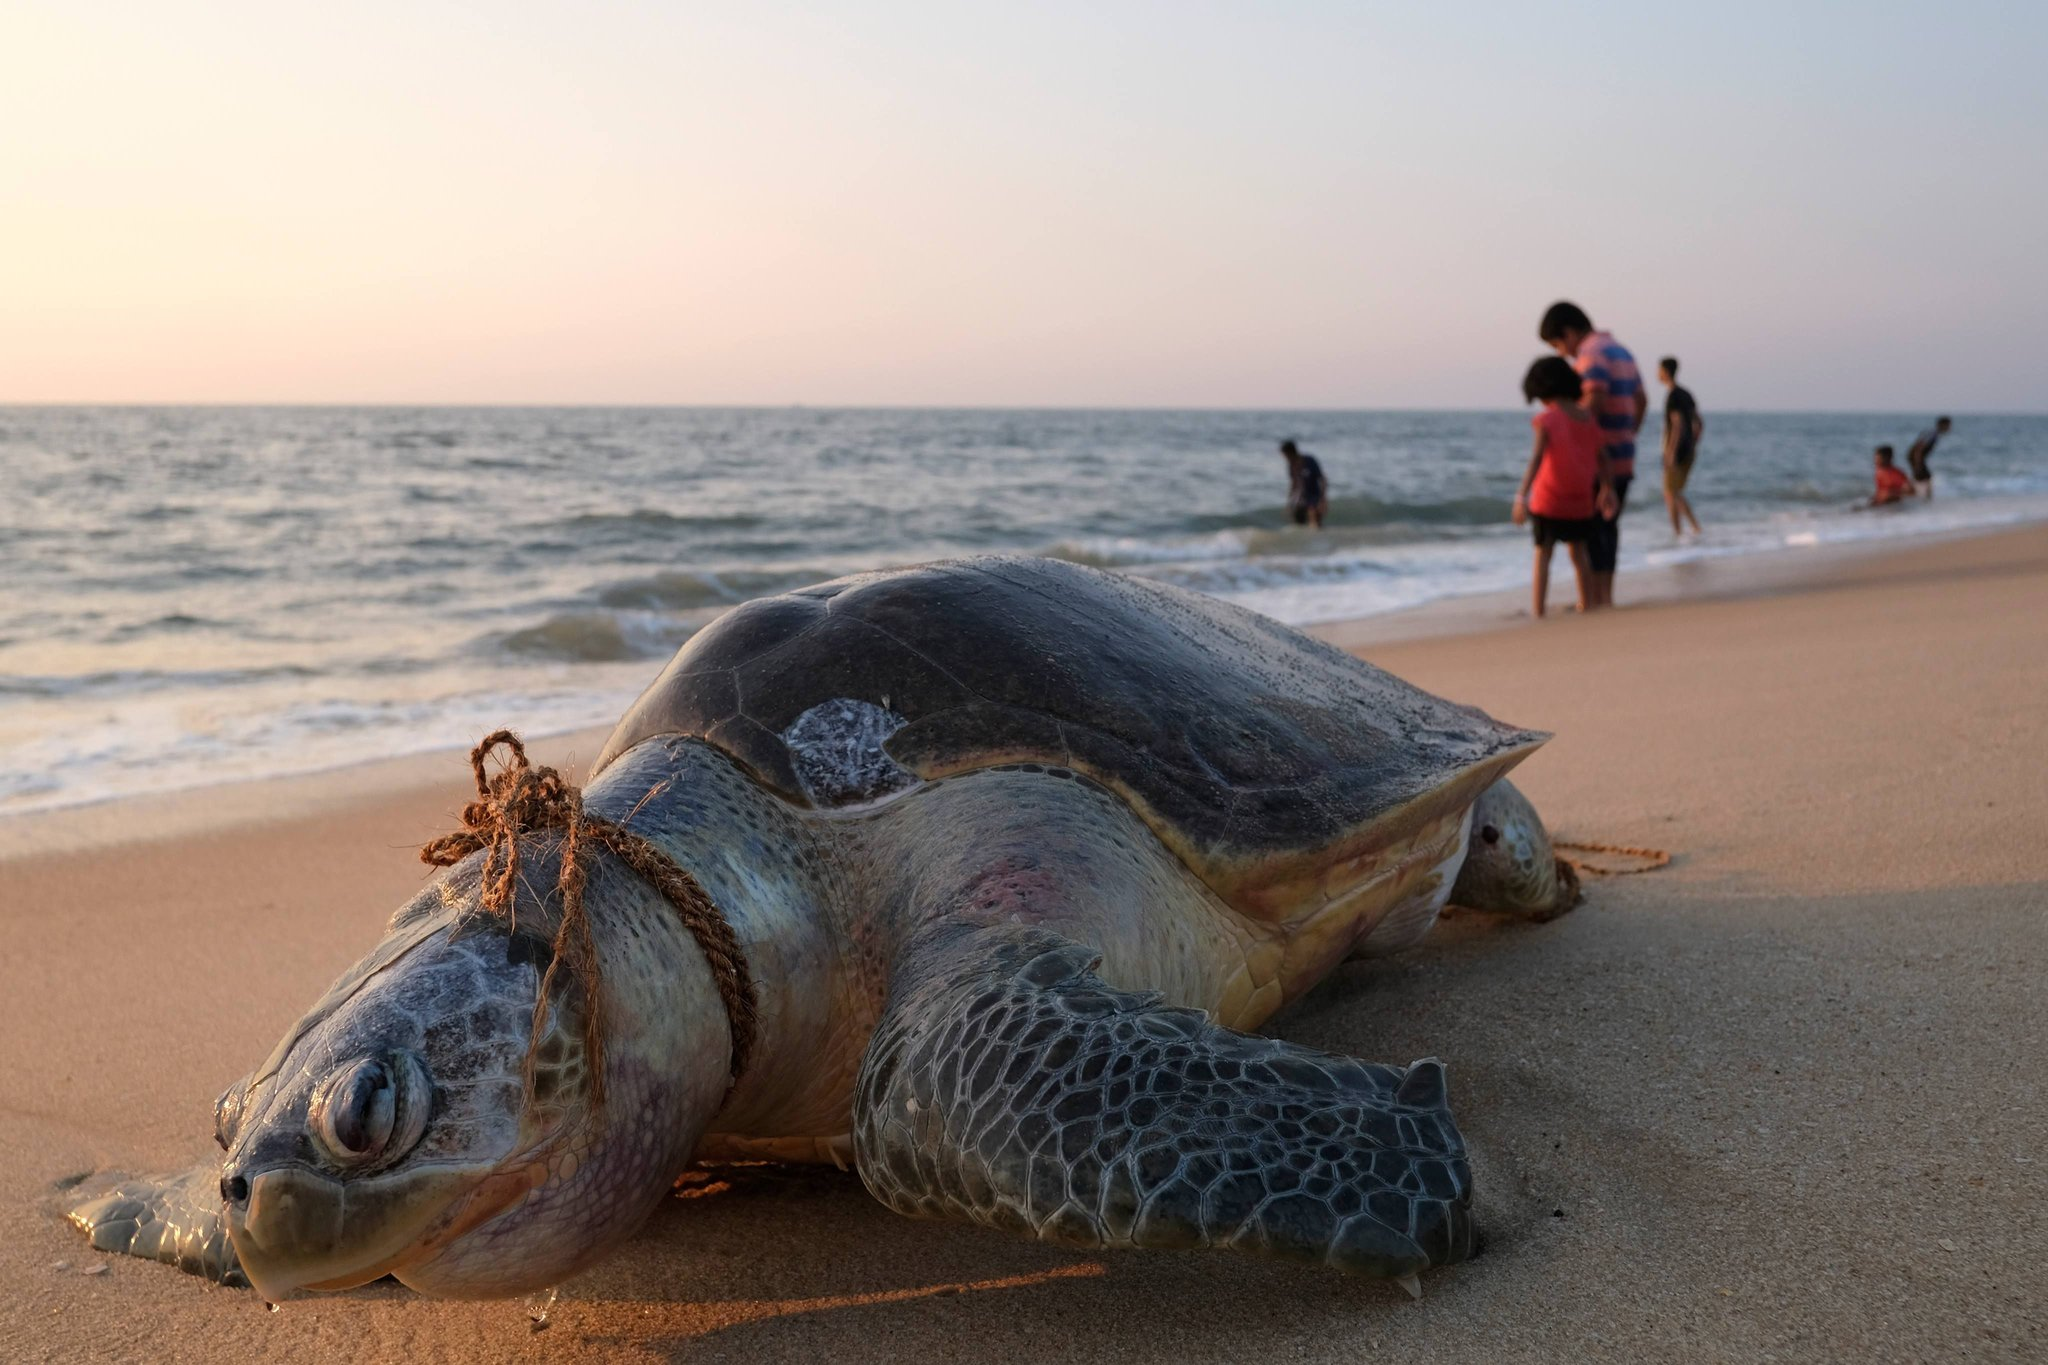 Fishing nets and ropes are a frequent hazard for olive ridley sea turtles, seen on a beach in India's Kerala state in January. A new 1,500-page report by the United Nations is the most exhaustive look yet at the decline in biodiversity across the globe. Credit Soren Andersson/Agence France-Presse — Getty Images